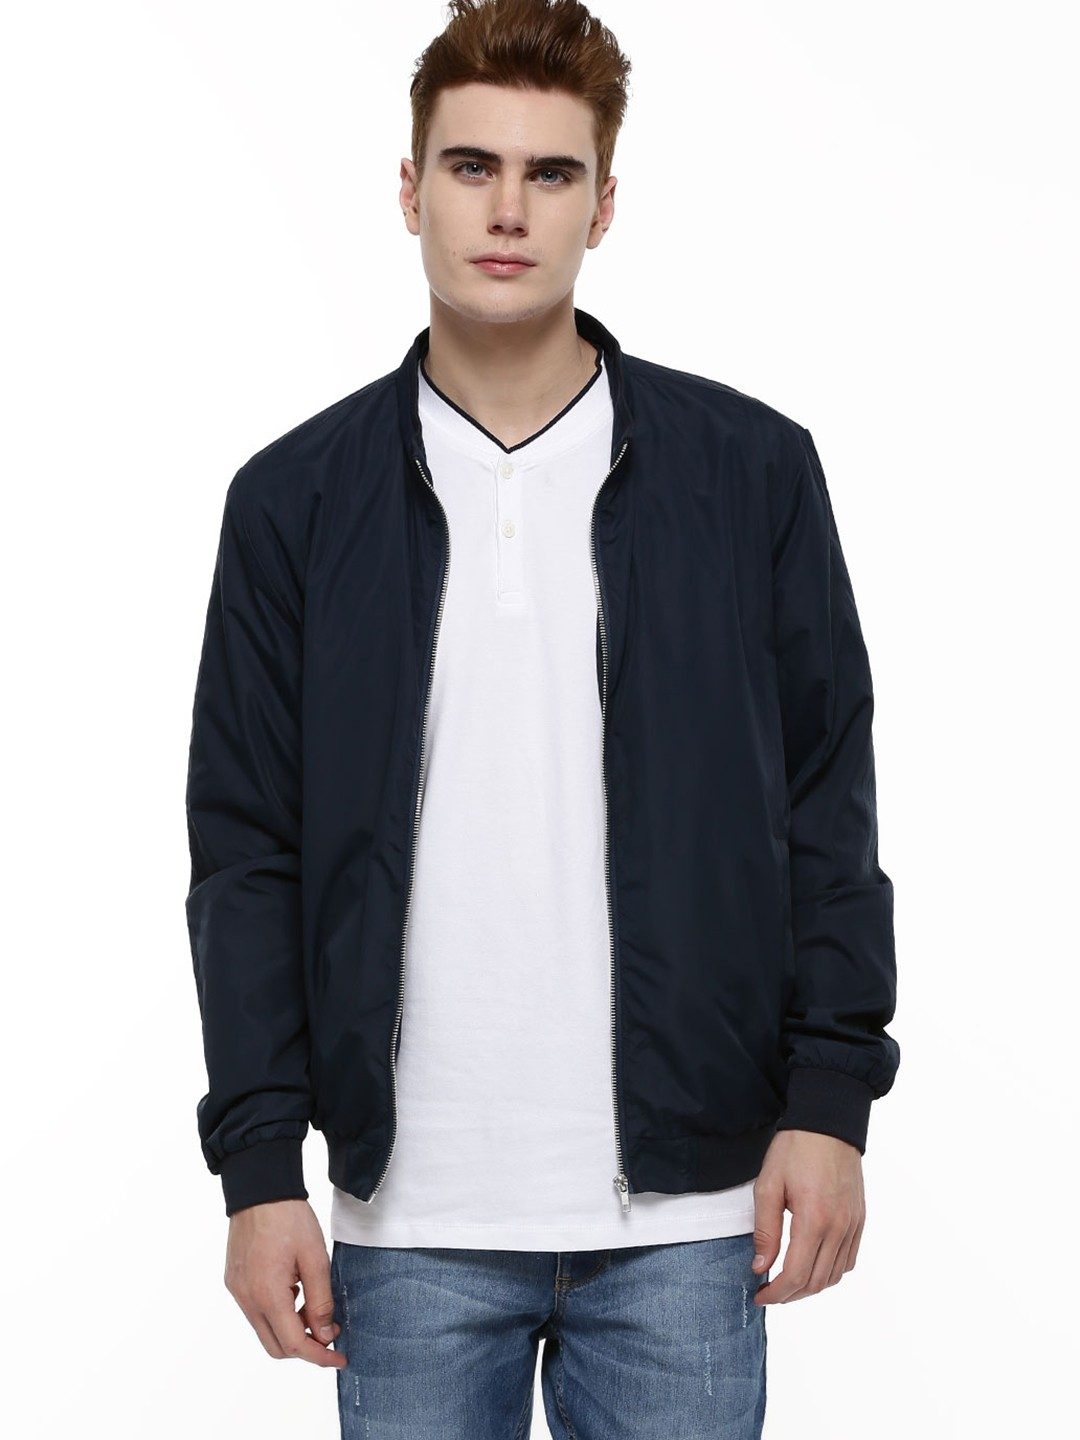 Buy SELECTED HOMME Bomber Jacket For Men - Men&39s Blue/Multi Bomber